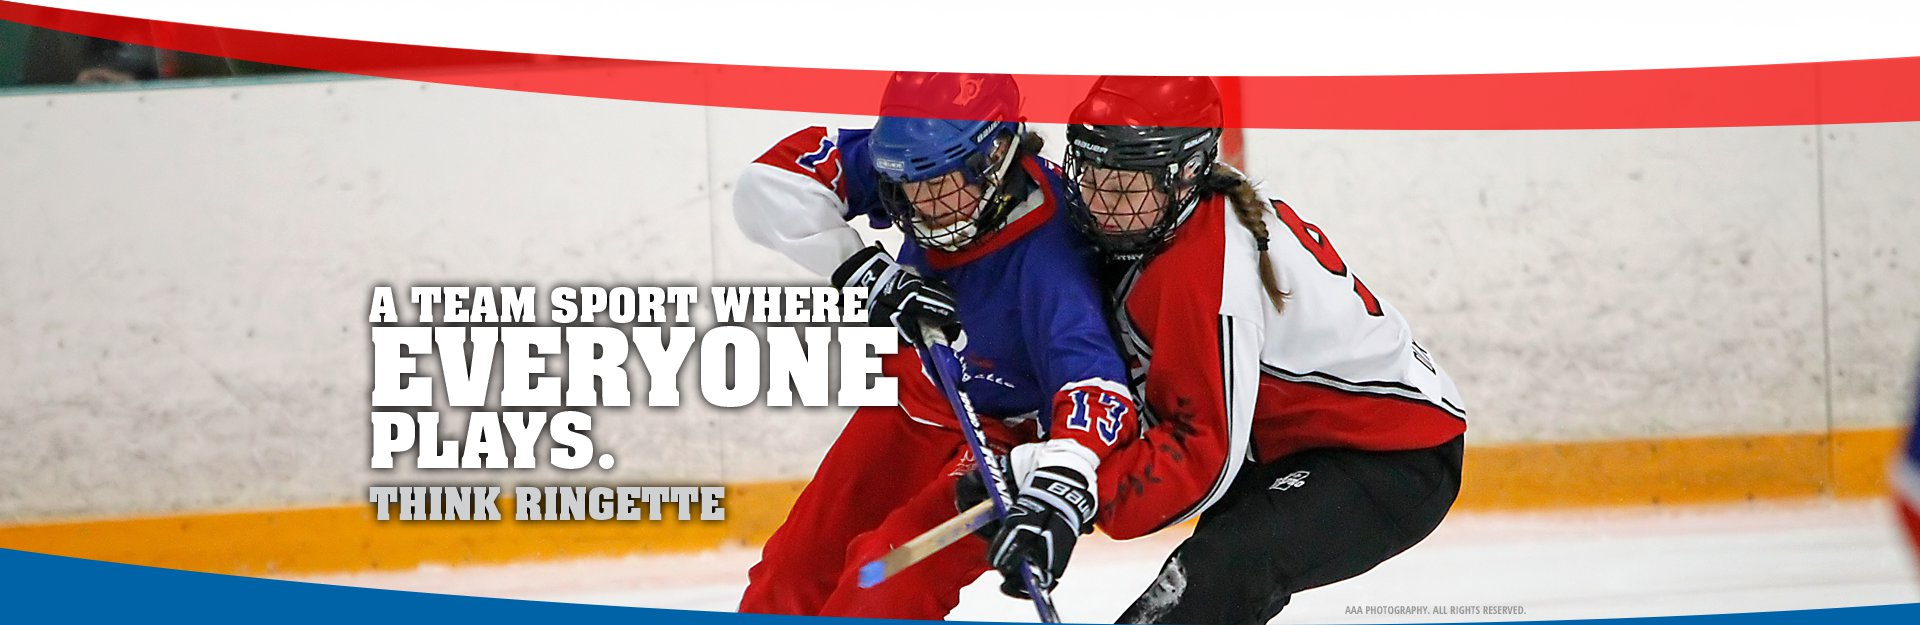 Main image of 2 females playing ringette